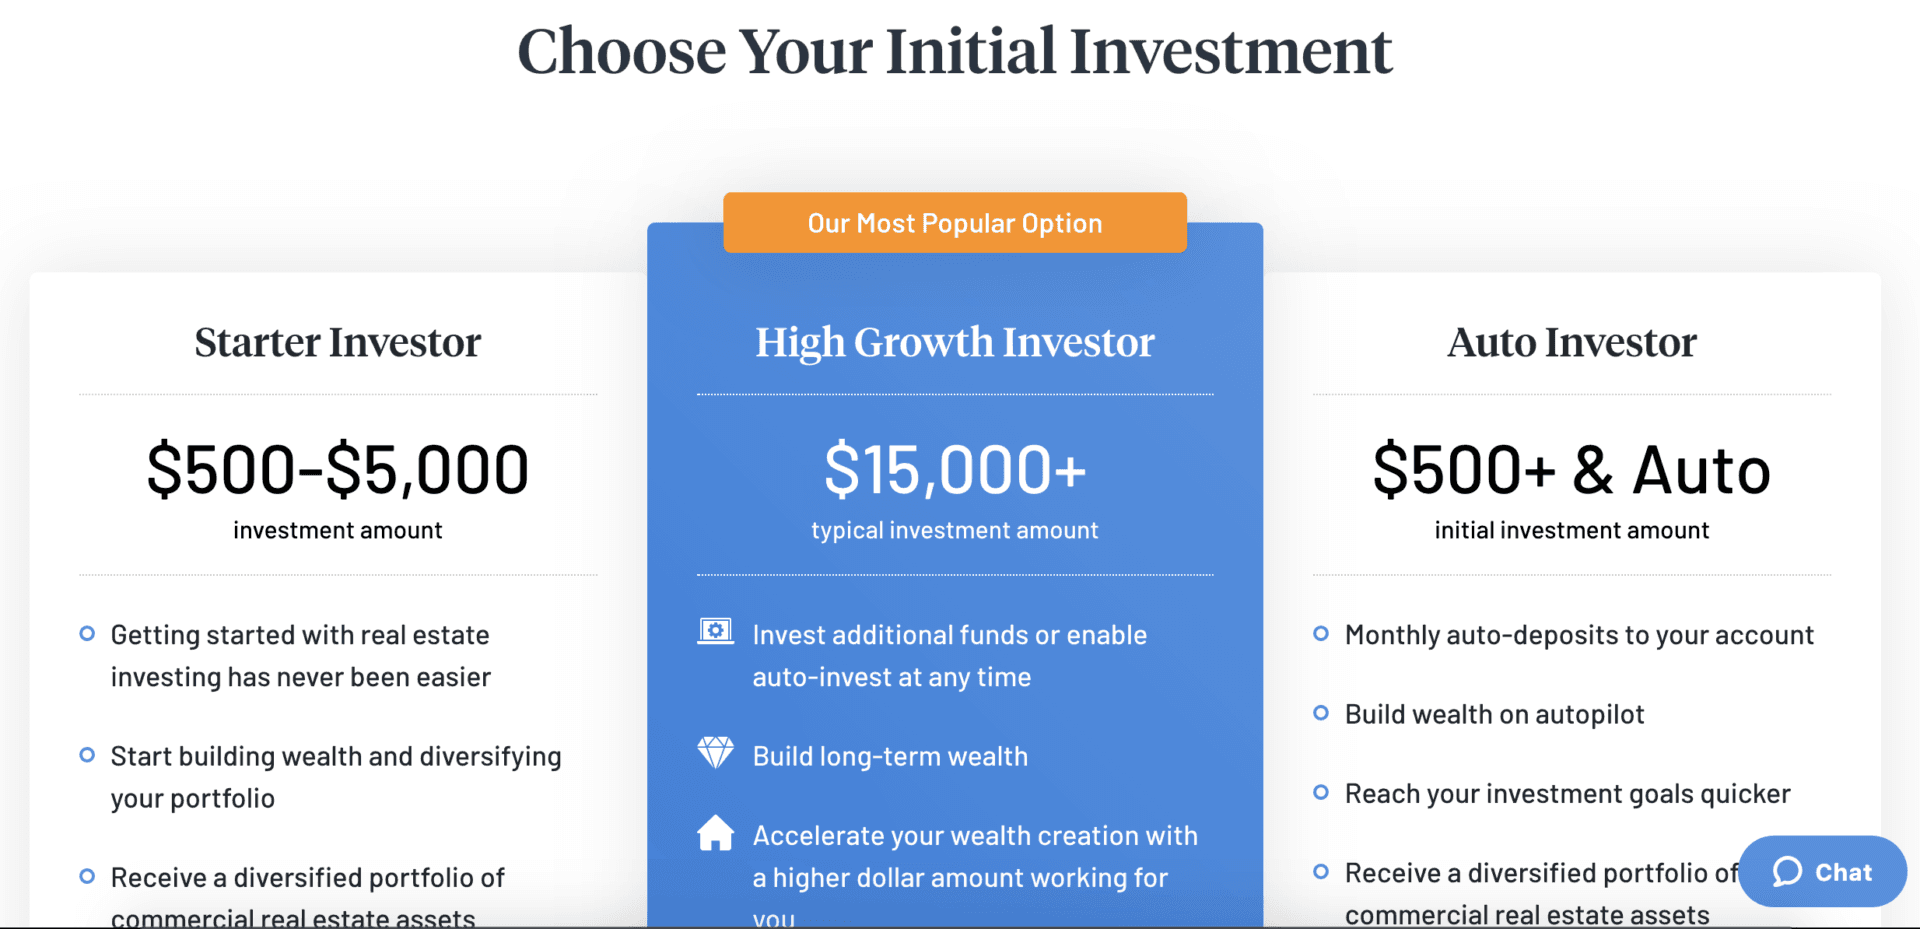 DiversyFund Review: My Experience Using DiversyFund - Initial investment